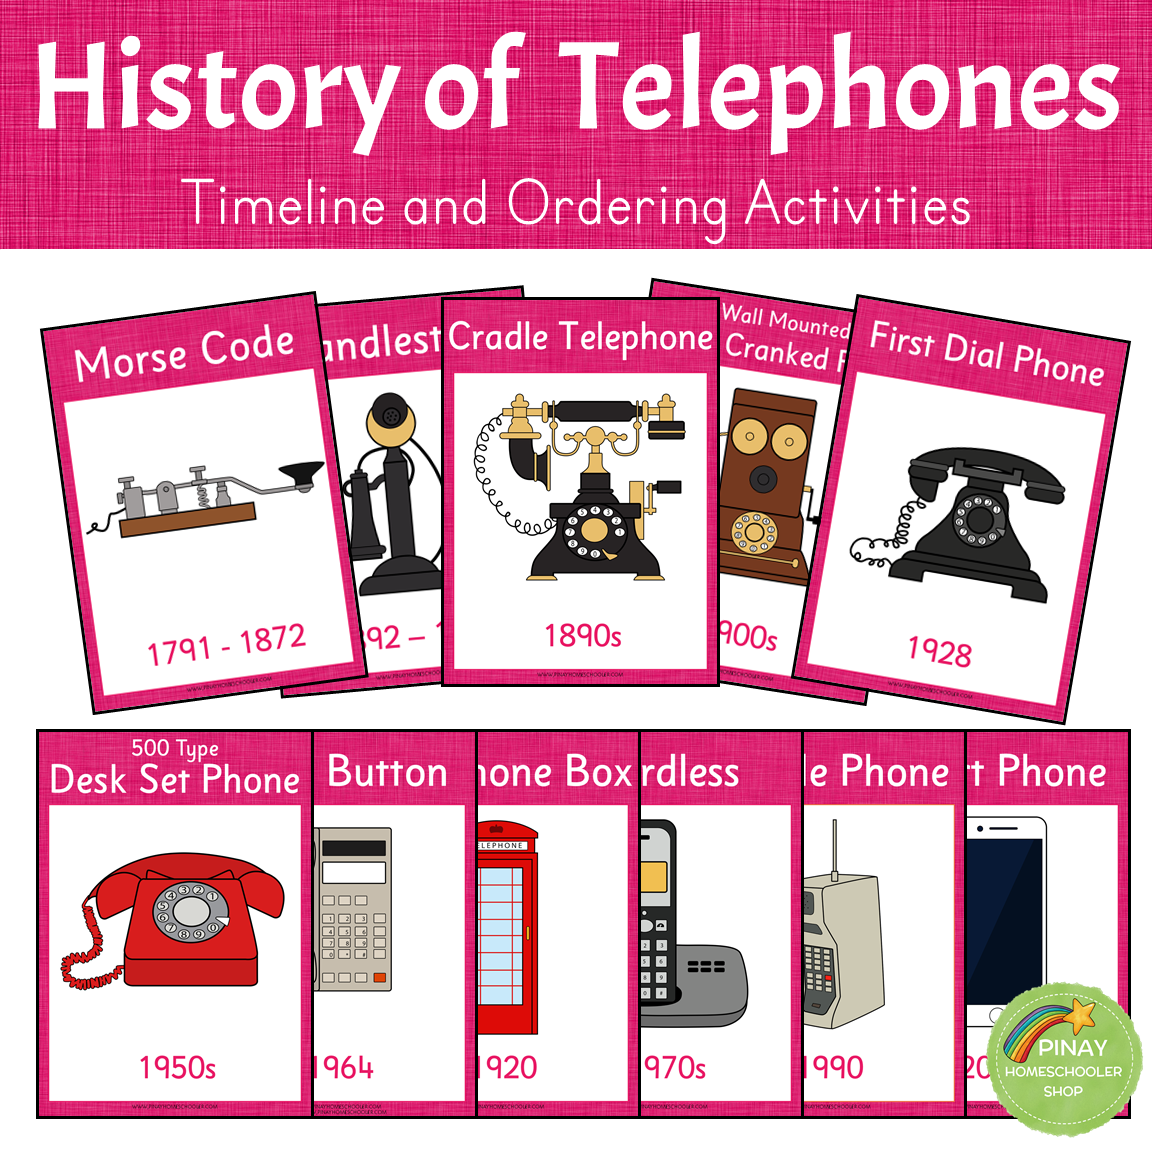 History of Telephones - Timeline and Ordering Activities